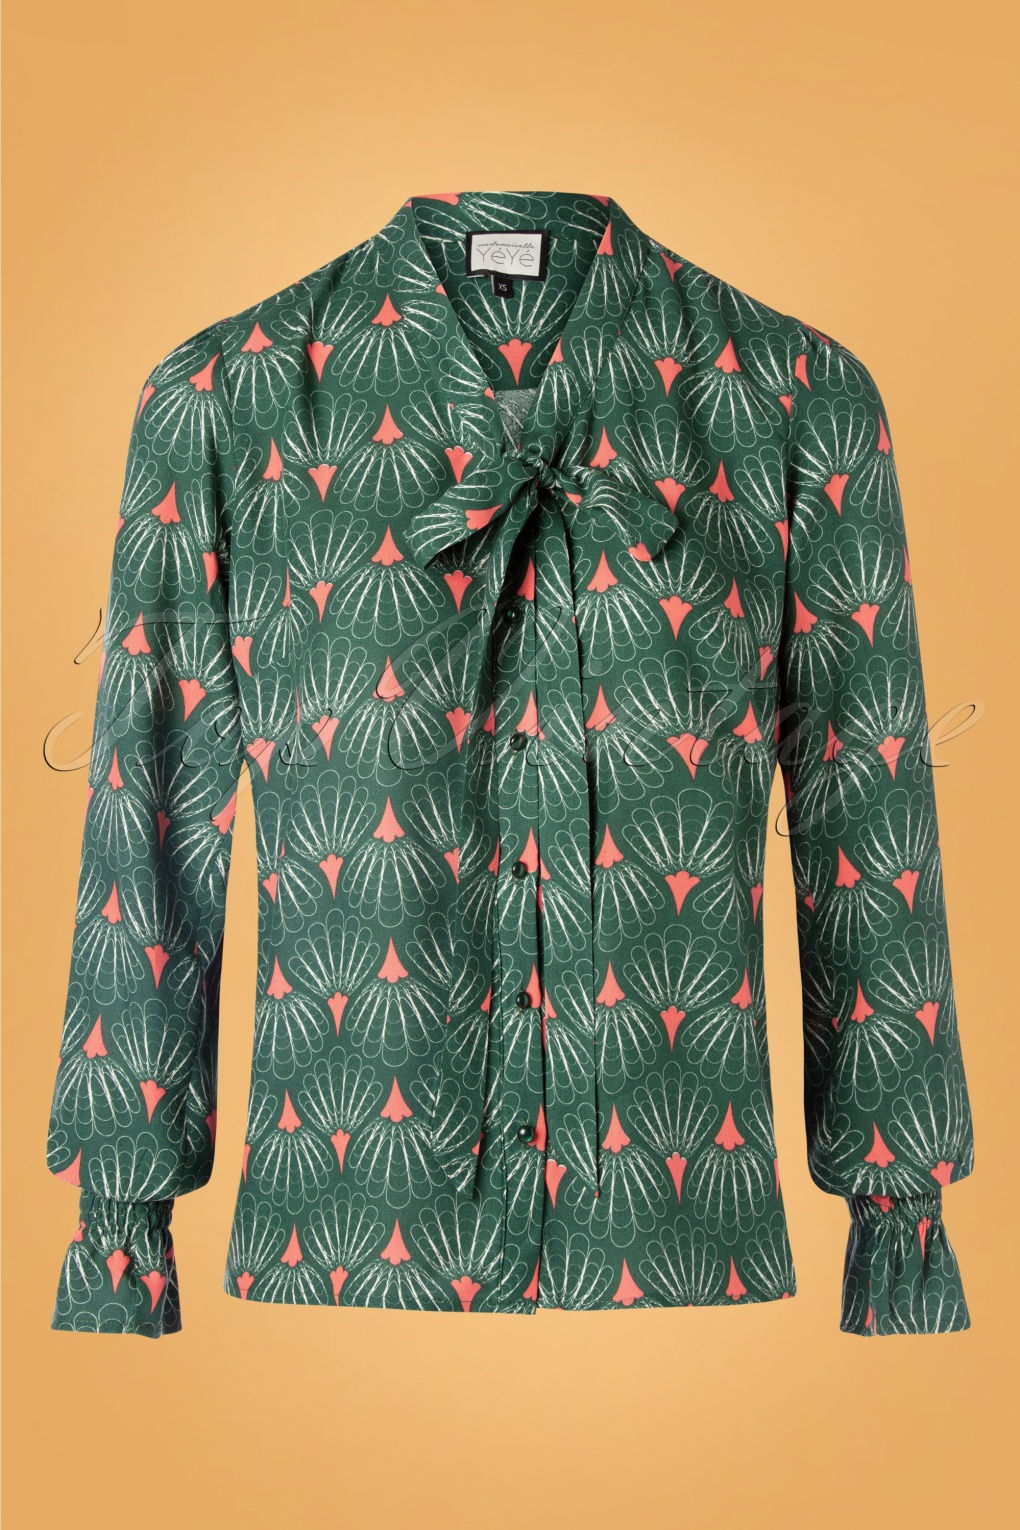 1960s Style Dresses, Clothing, Shoes UK 60s Mindfulness Tres Chic Blouse in Green £65.59 AT vintagedancer.com